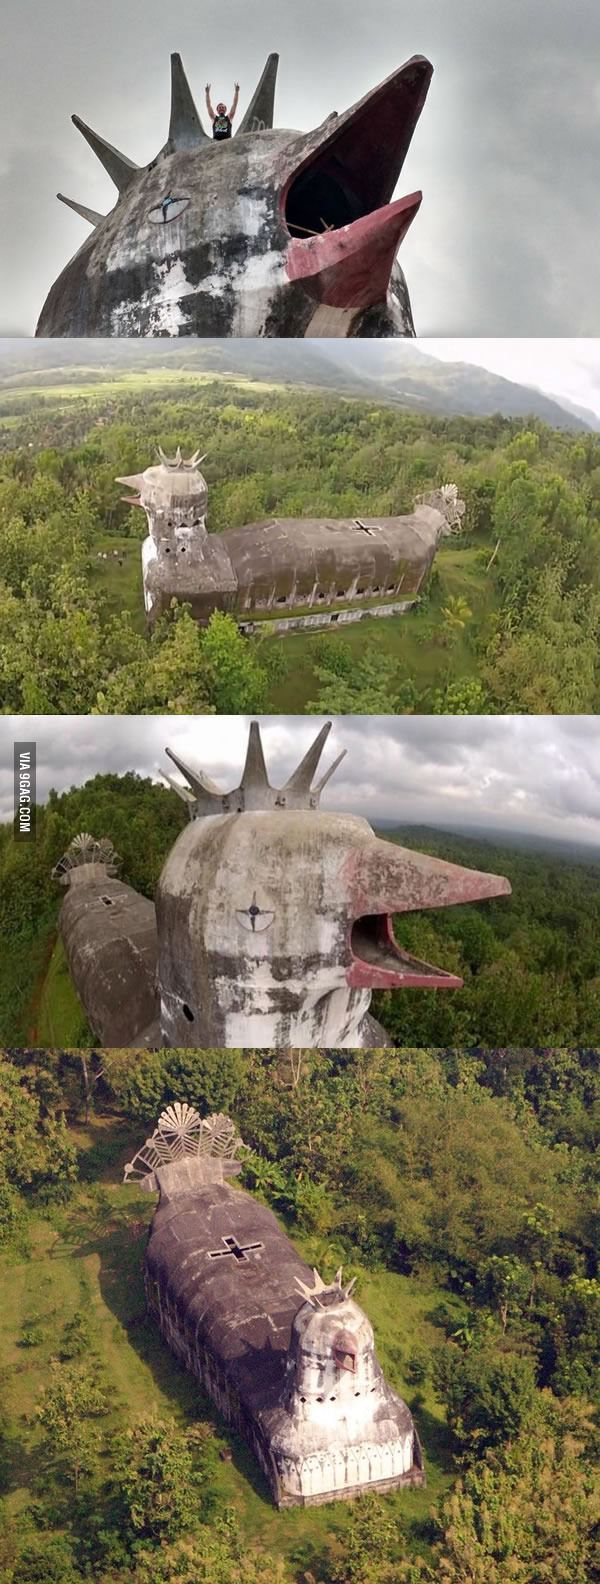 Mysterious abandoned 'Chicken Church' built in the Indonesian jungle by the man who had a vision from God. - 9GAG